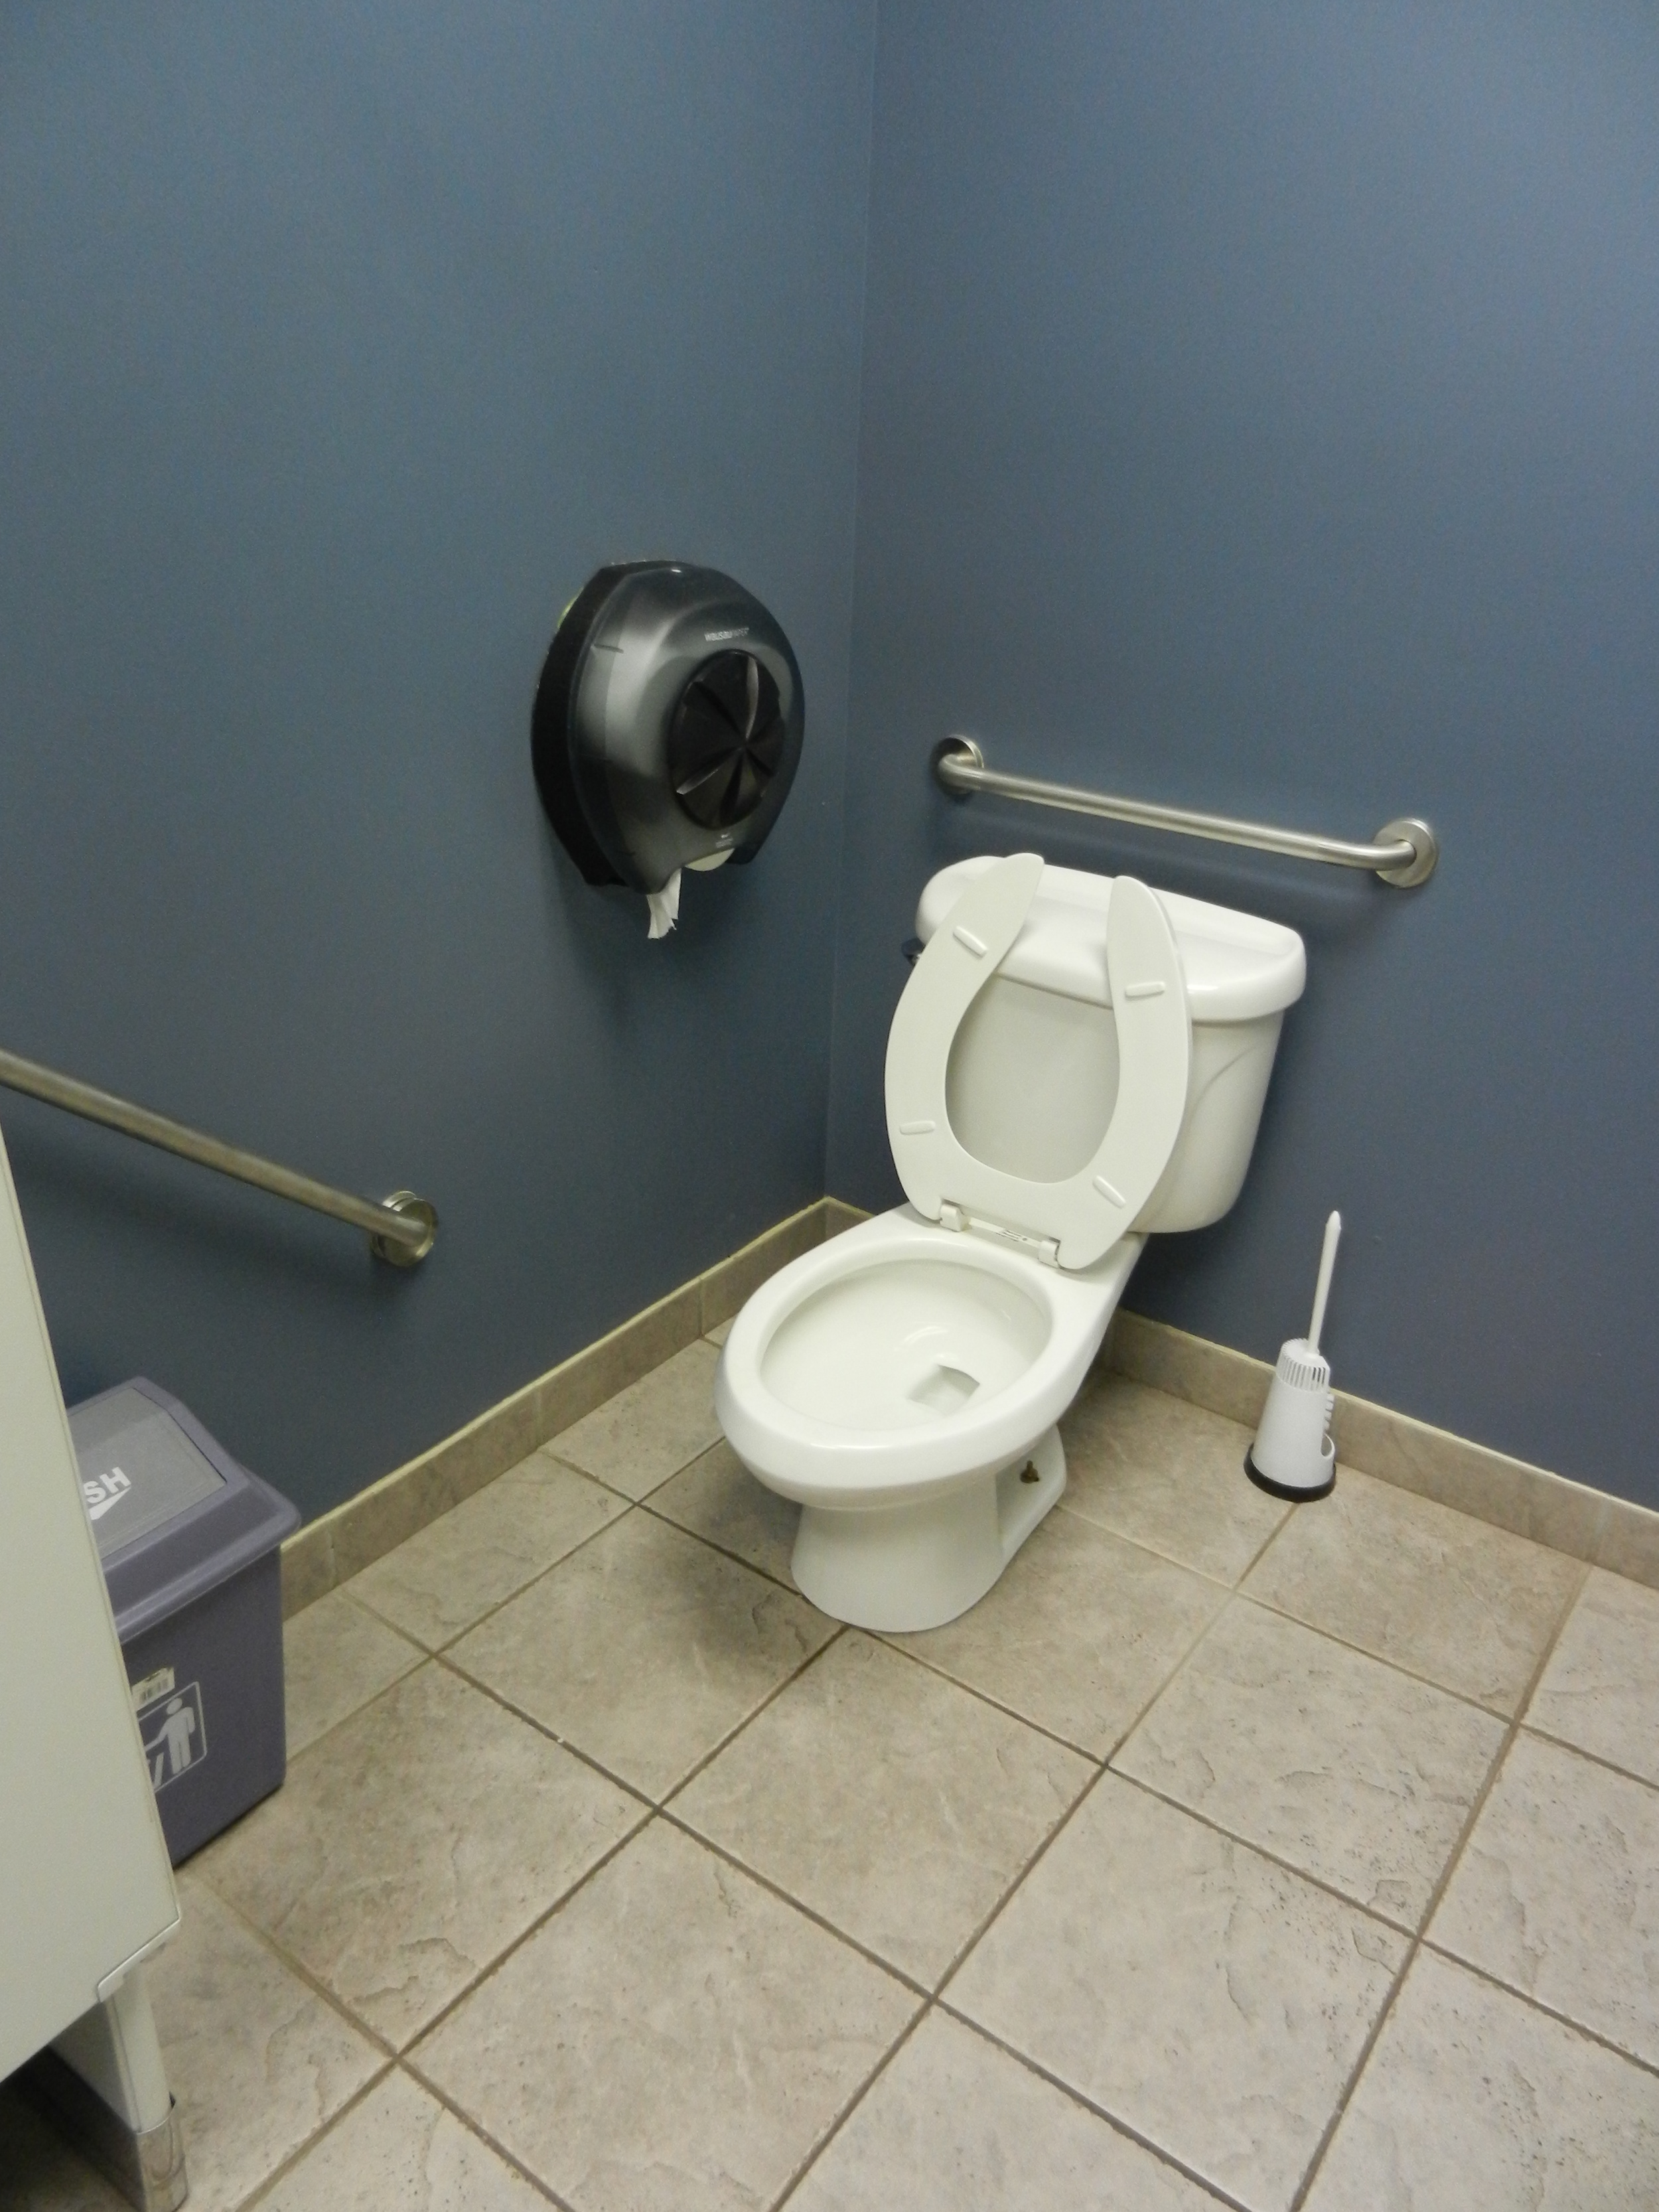 Picture of accessible bathroom (toilet).